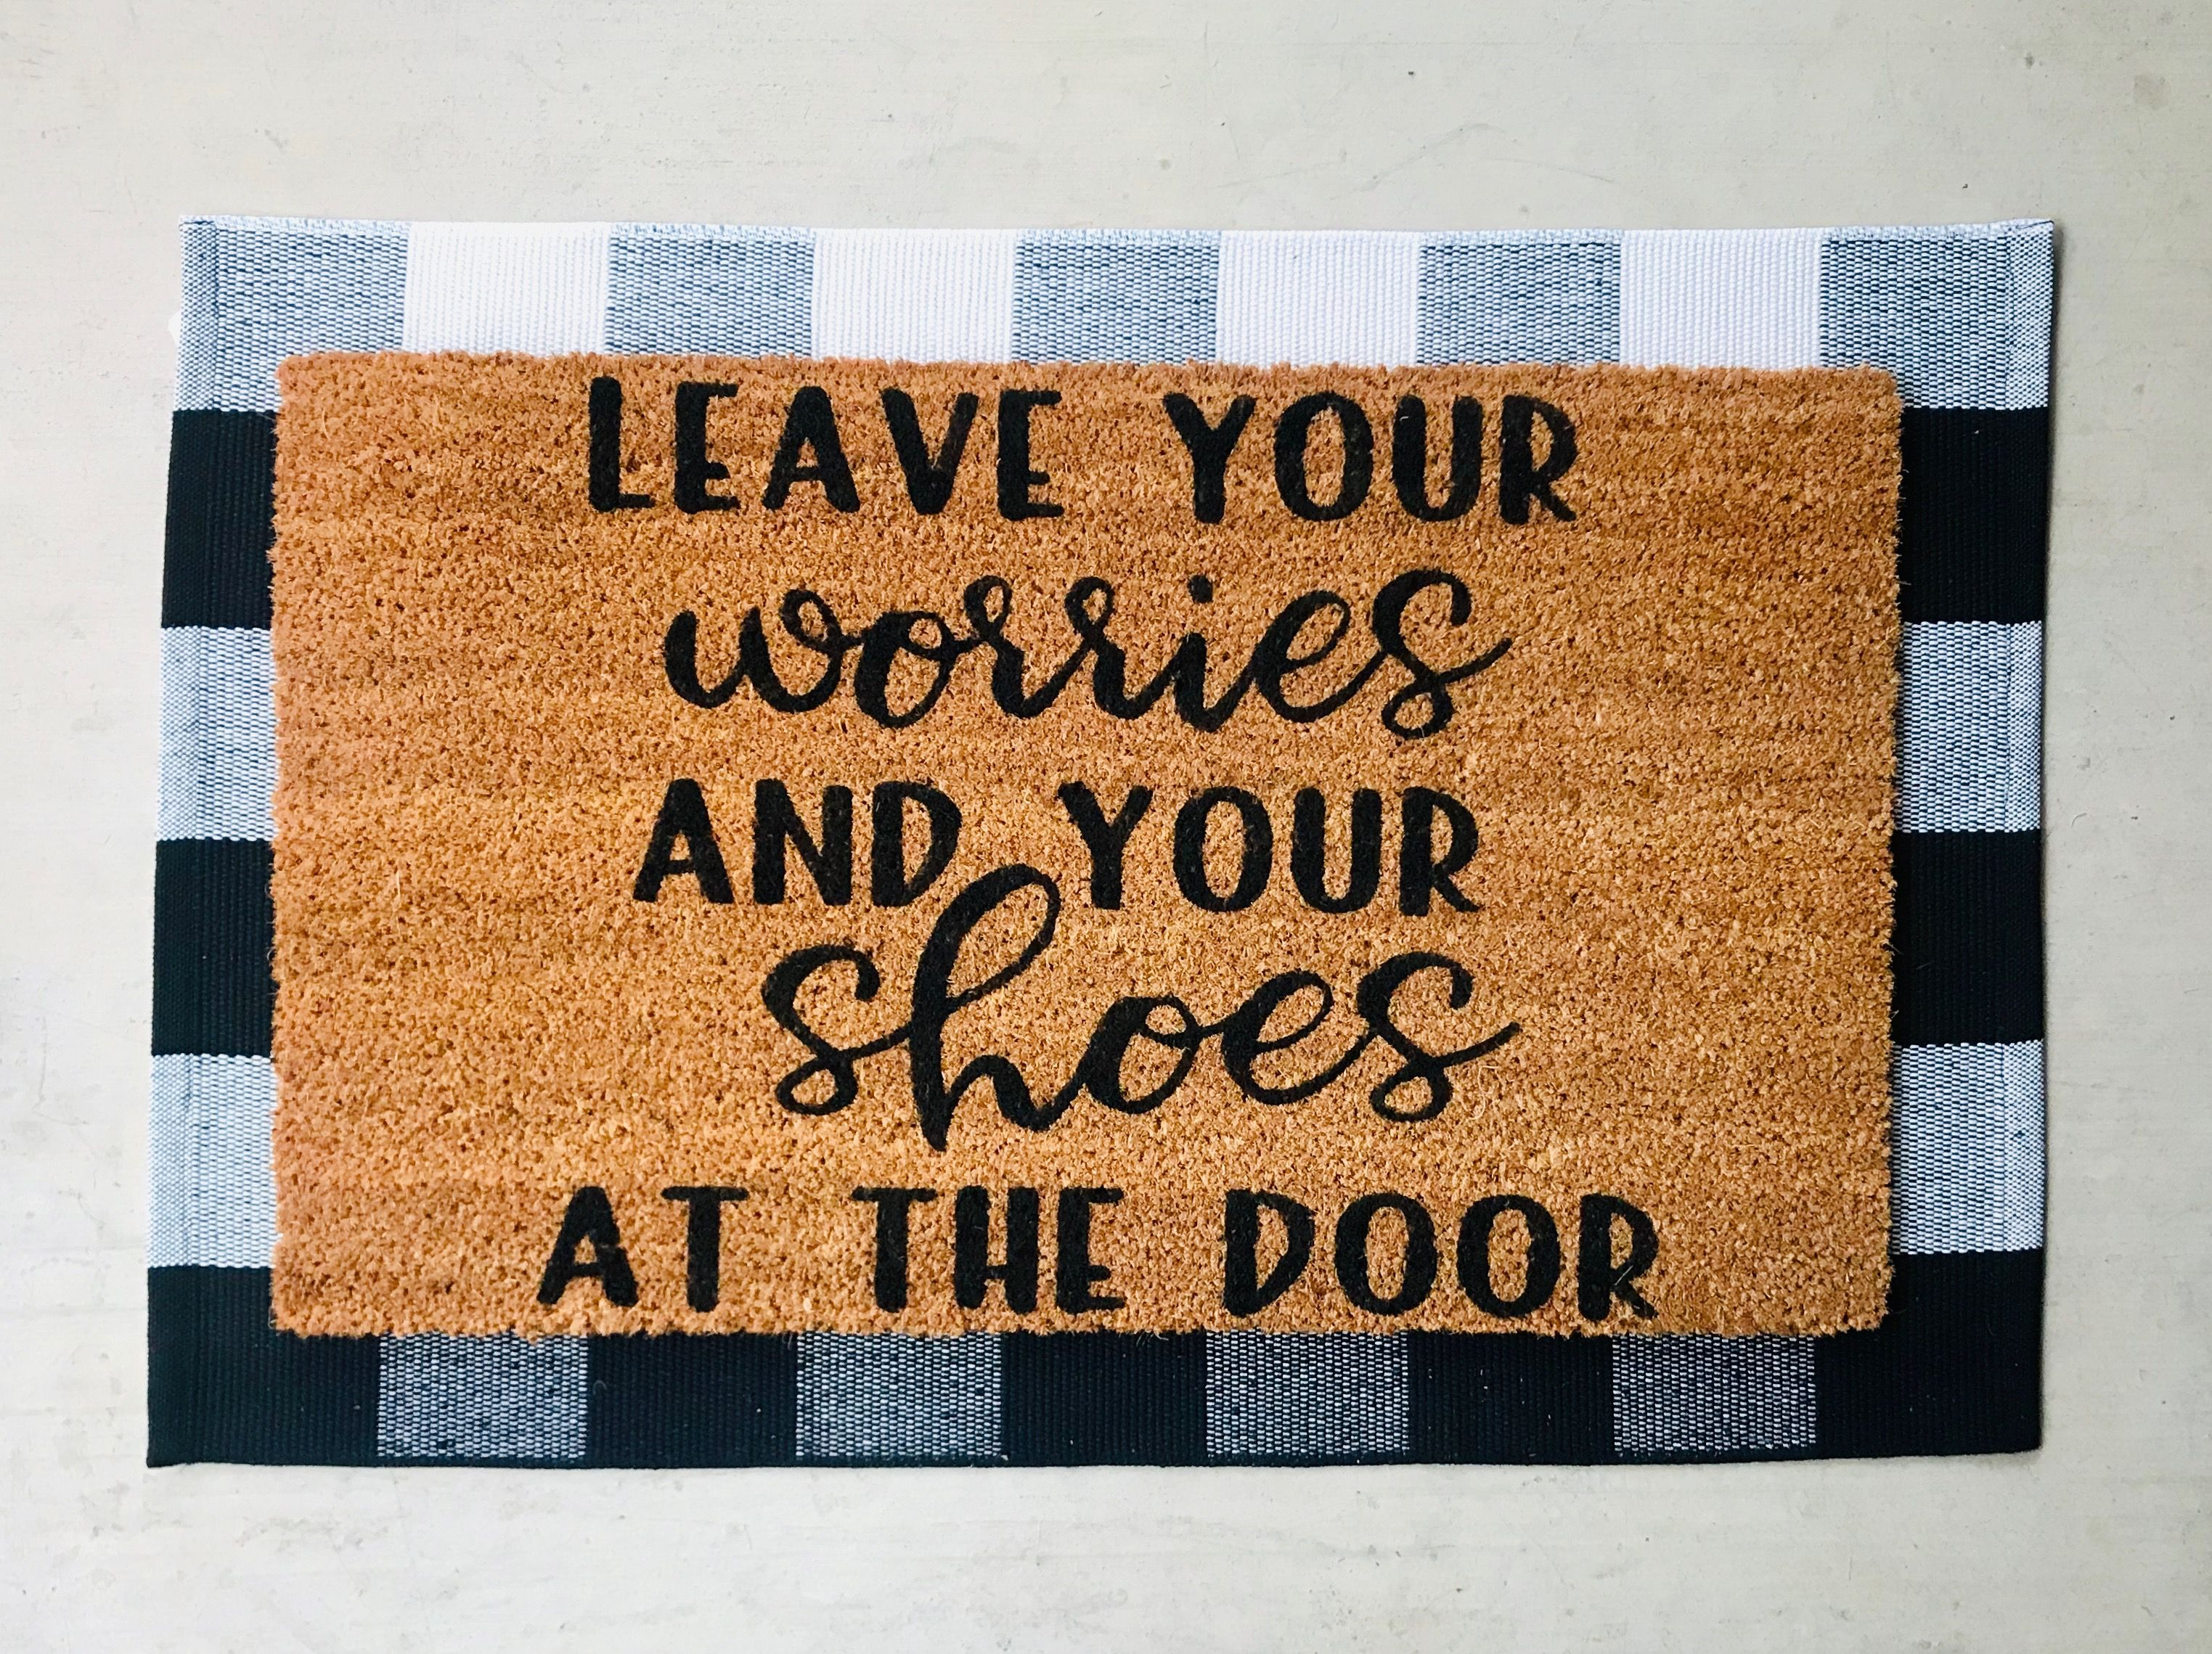 Leave Your Worries And Your Shoes At The Door Instructional Doormat Shoes Off No Shoes Immunocompromised Doormat Door Mat Personalized Door Mats Doors